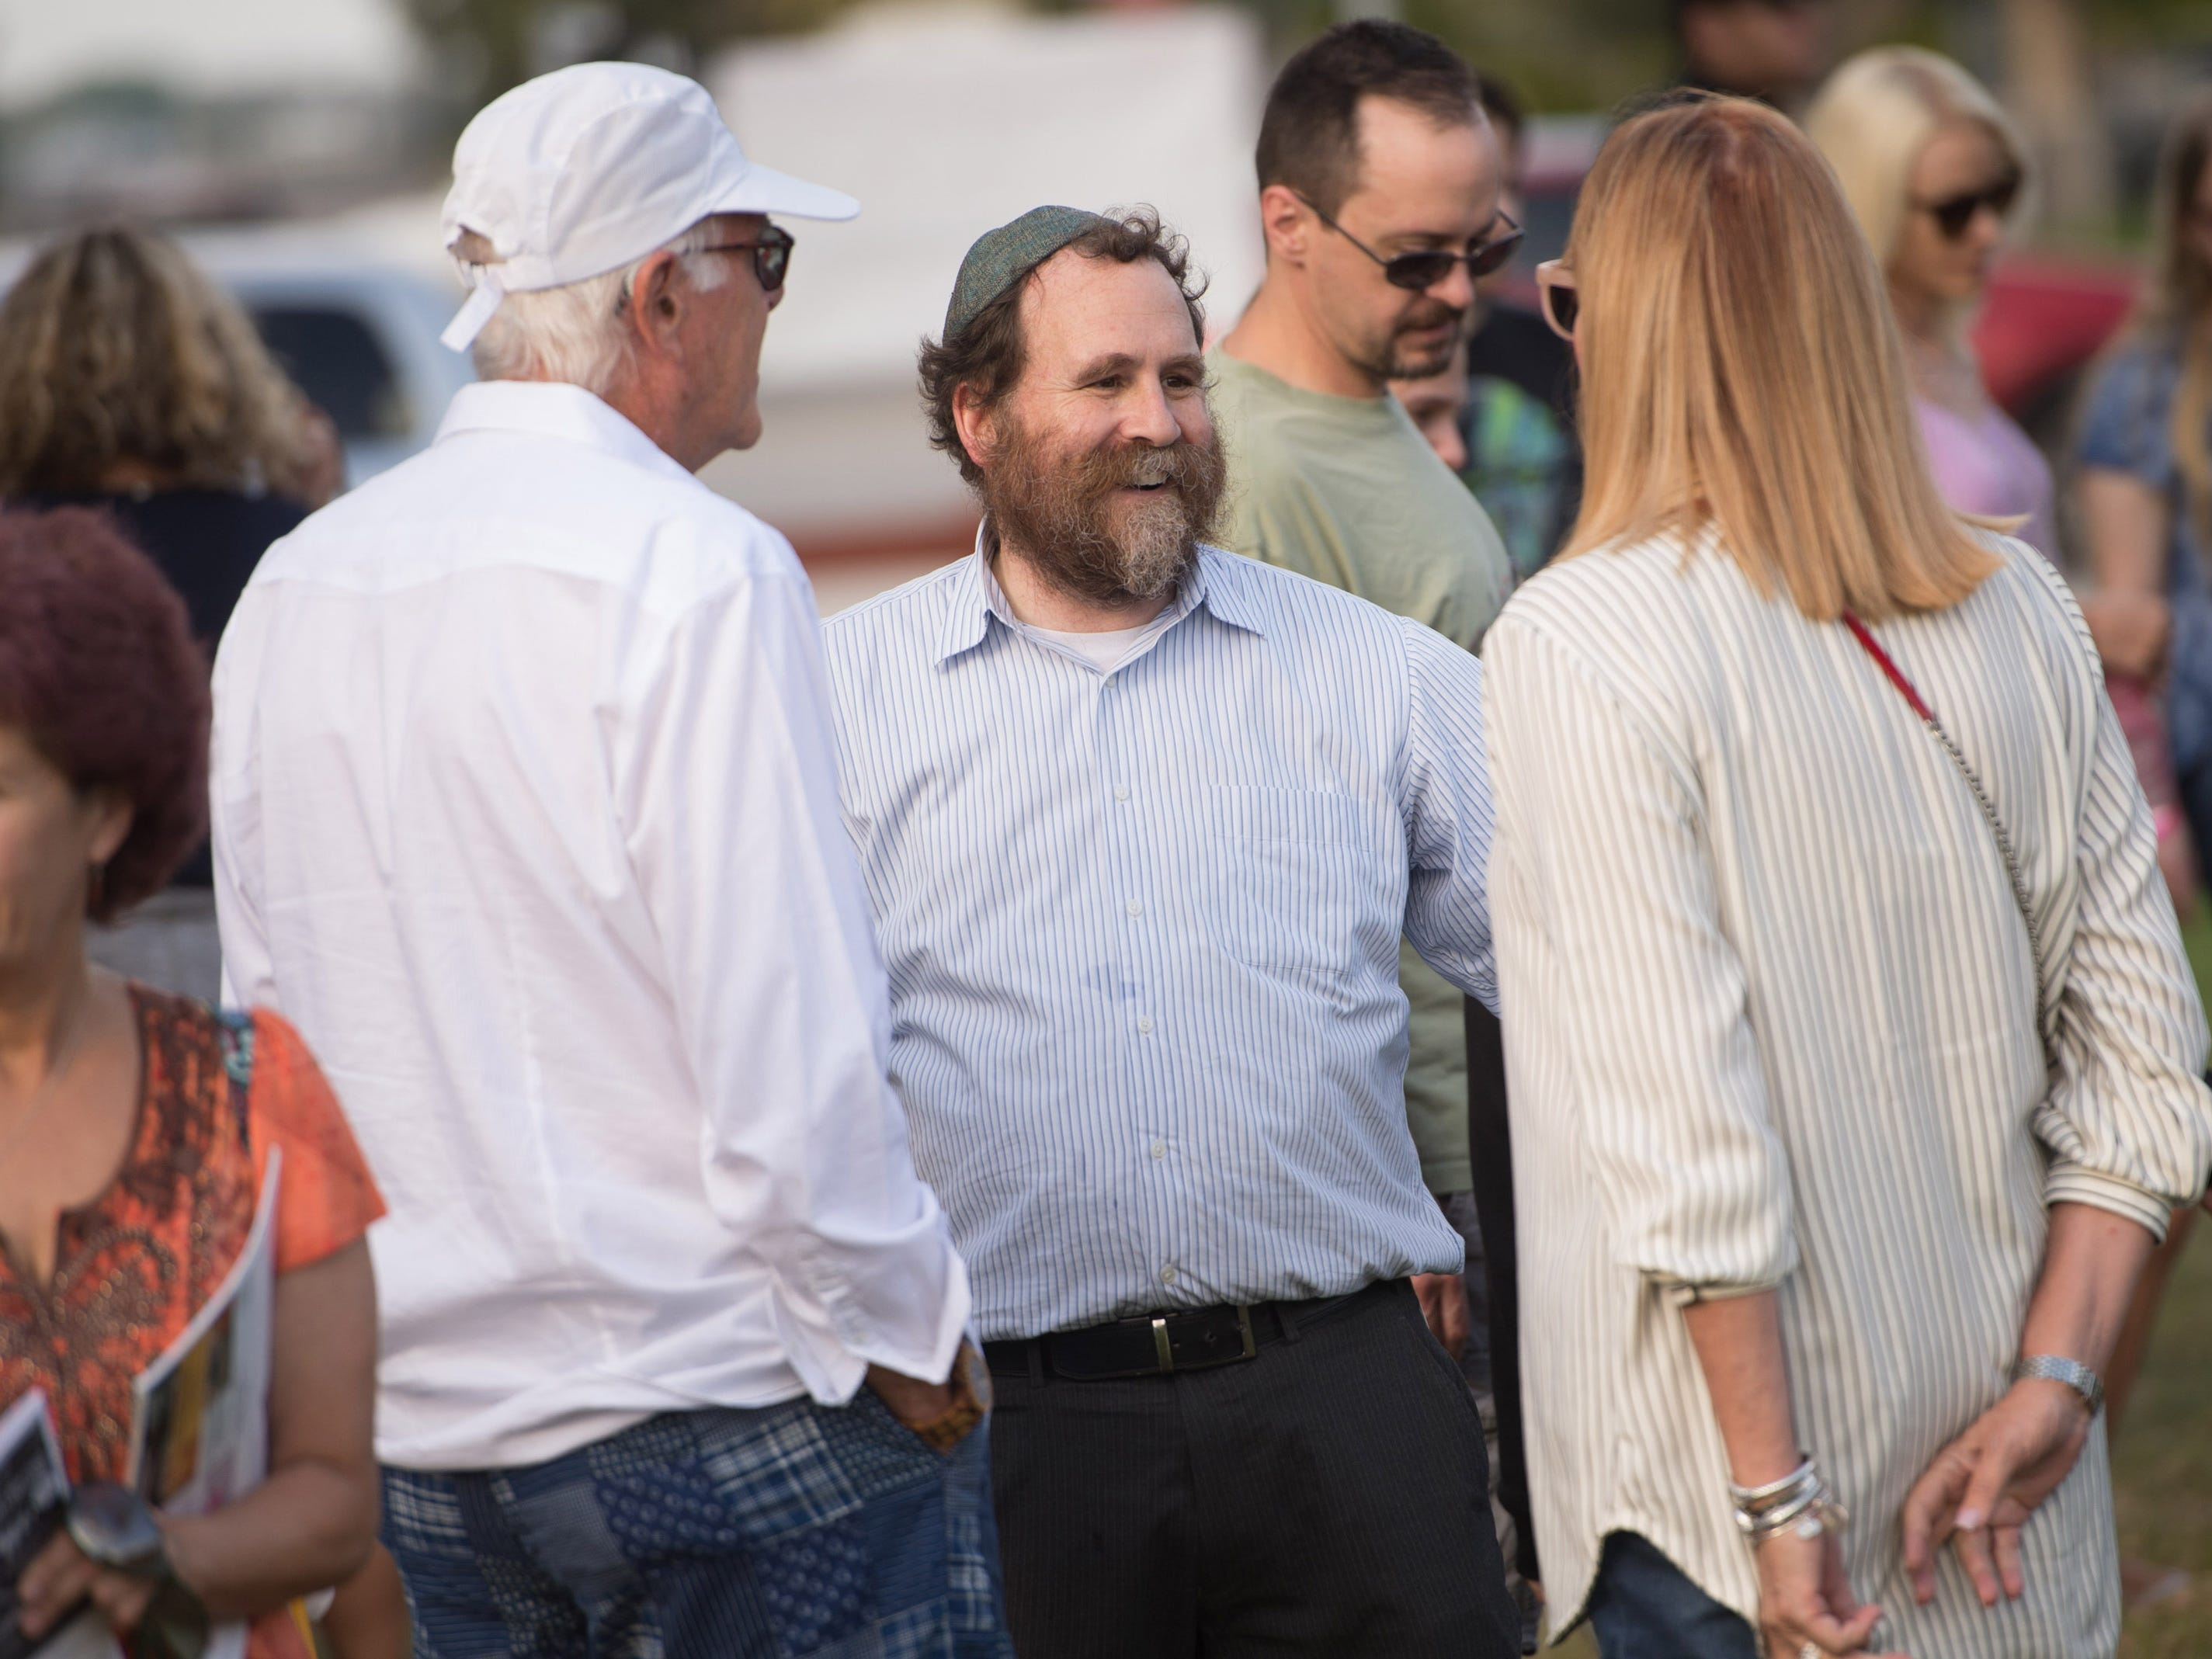 The 21st annual Community Chanukah Celebration and public Menorah Lighting Ceremony hosted by the Chabad Jewish Community Center of Martin and St. Lucie County at Memorial Park on Sunday, December 2, 2018 in Stuart.